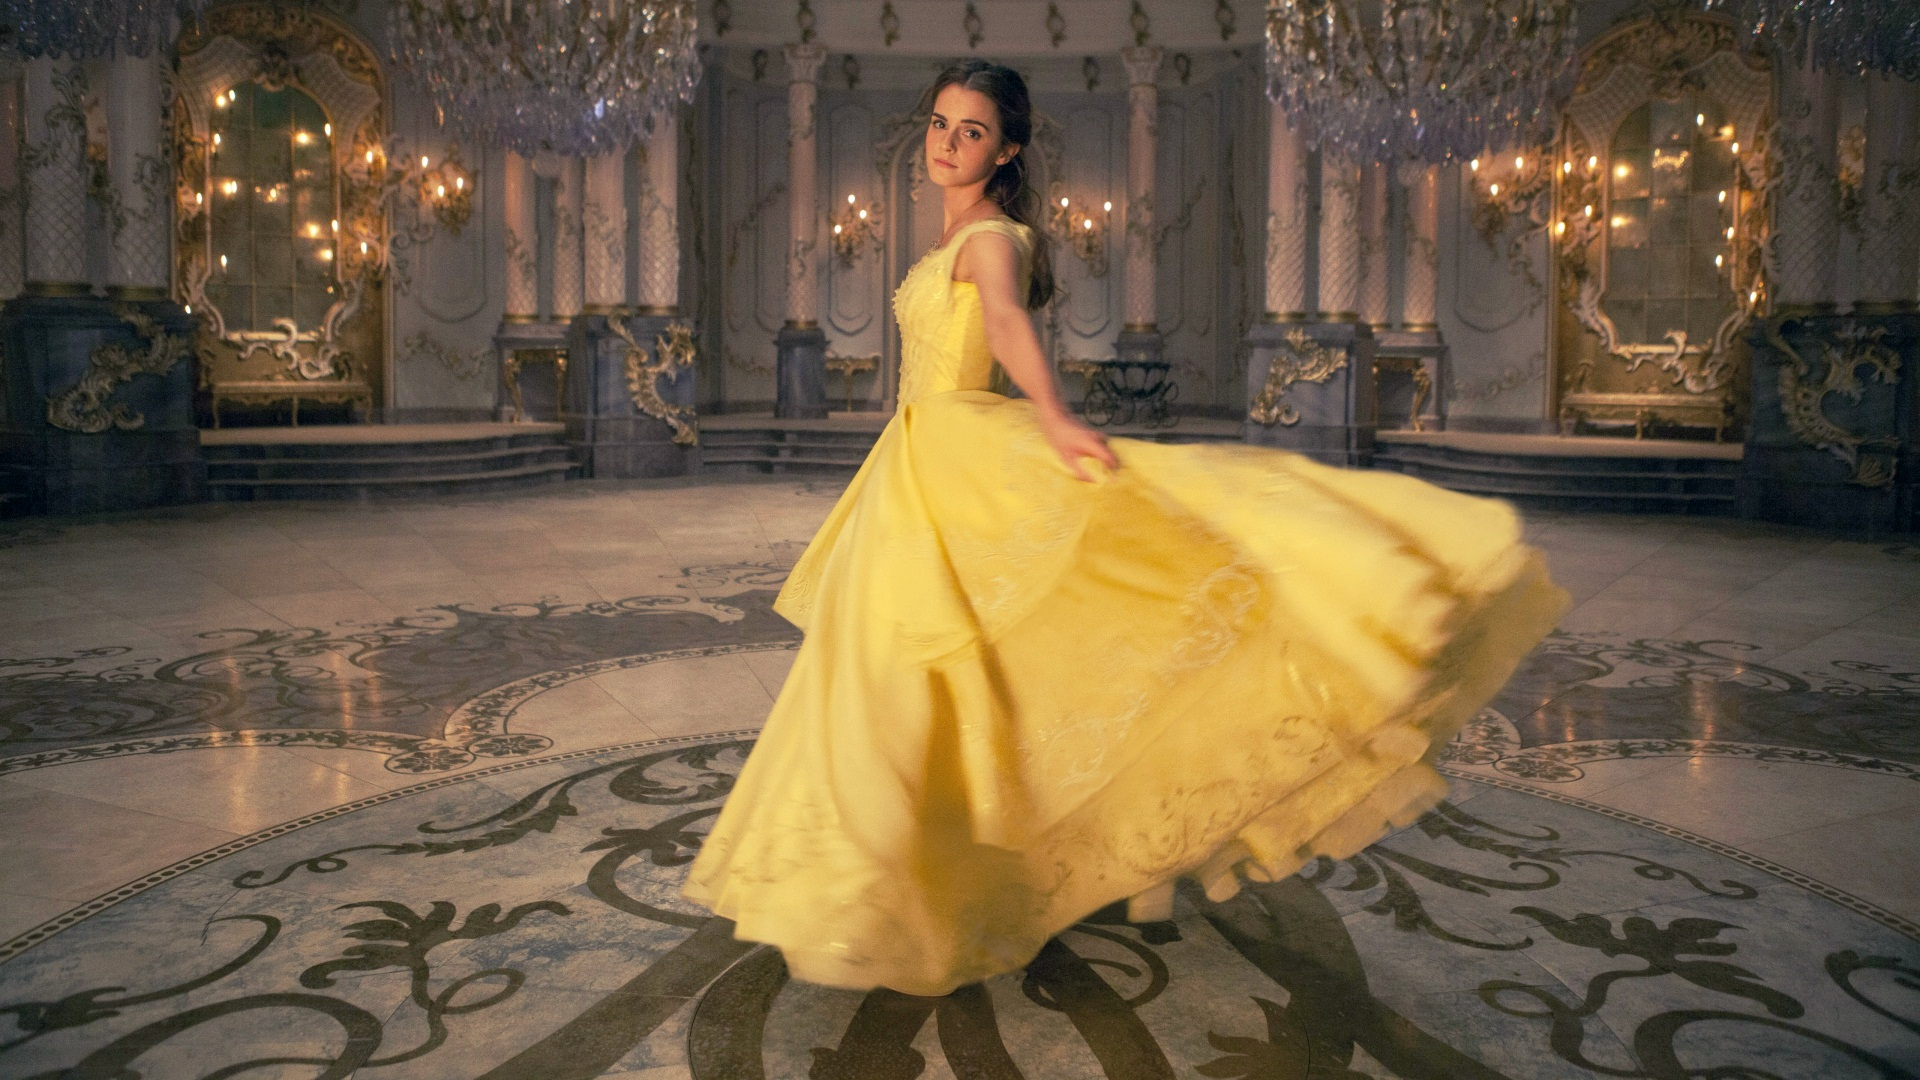 Emma Watson Beauty And The Beast Yellow Dress Wallpaper